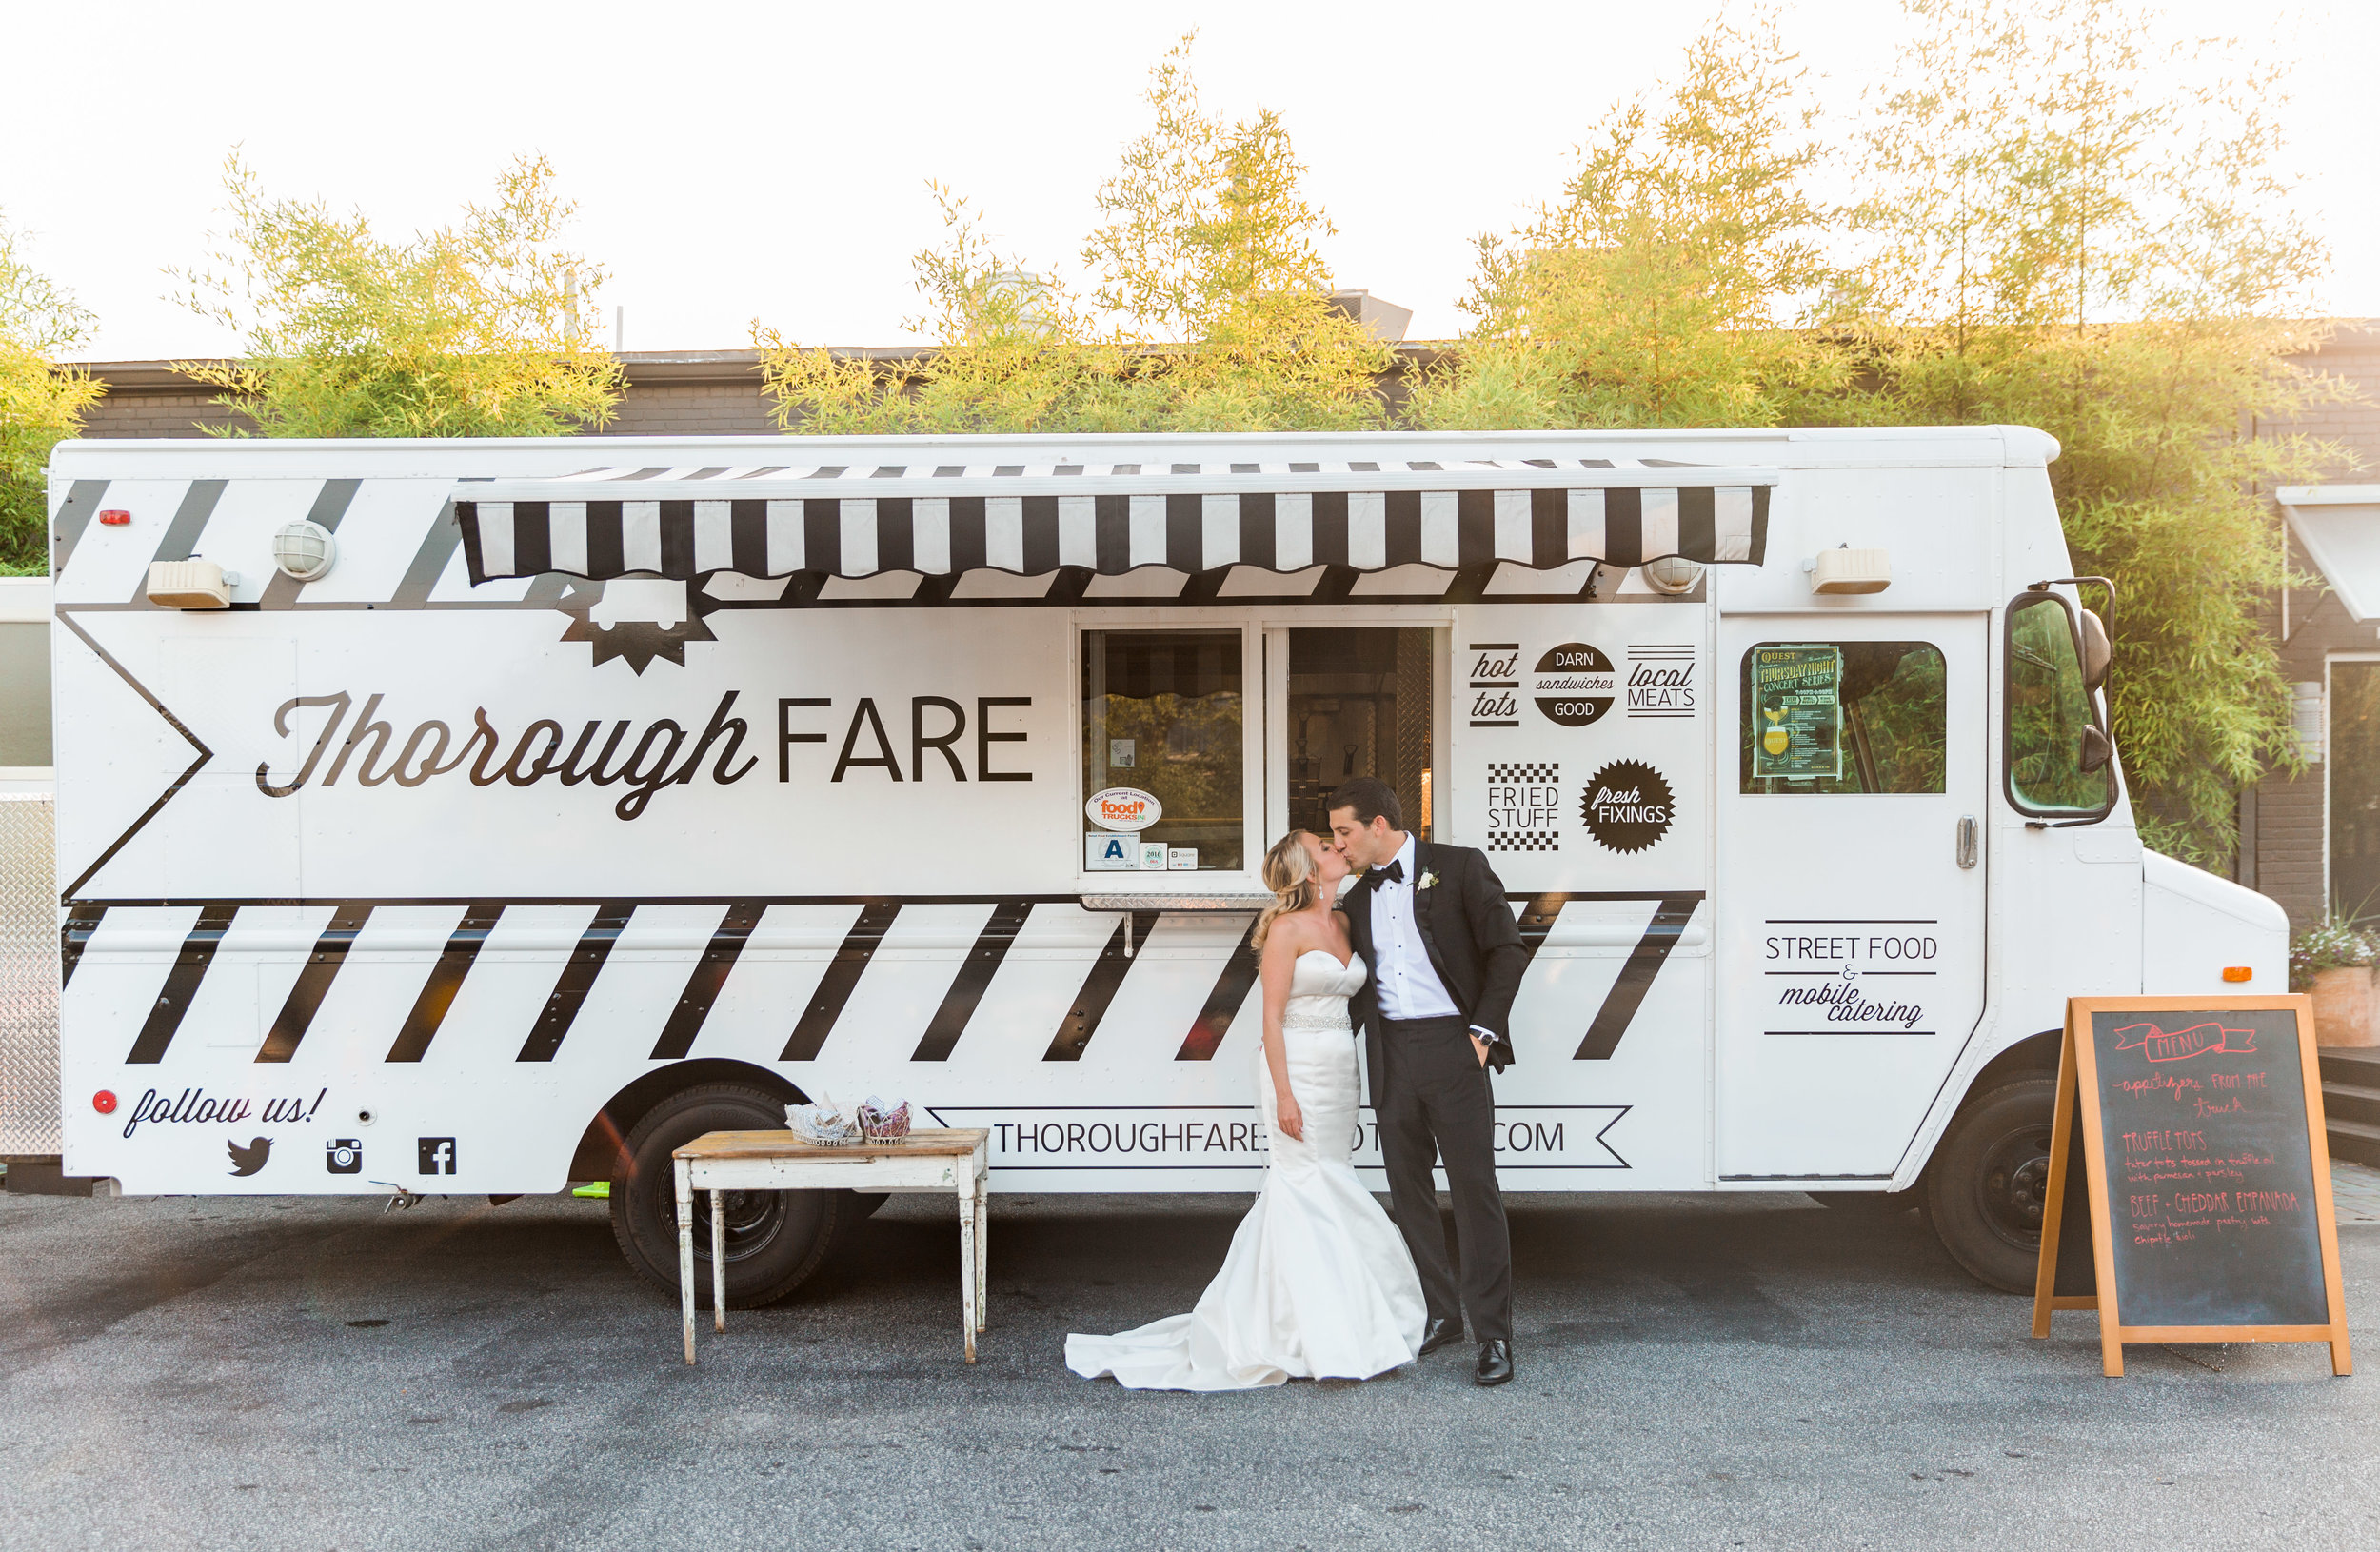 Having a food truck at your wedding is a one of a kind experience! Thorough Fare provided decious items for the cocktail hour & dinner.